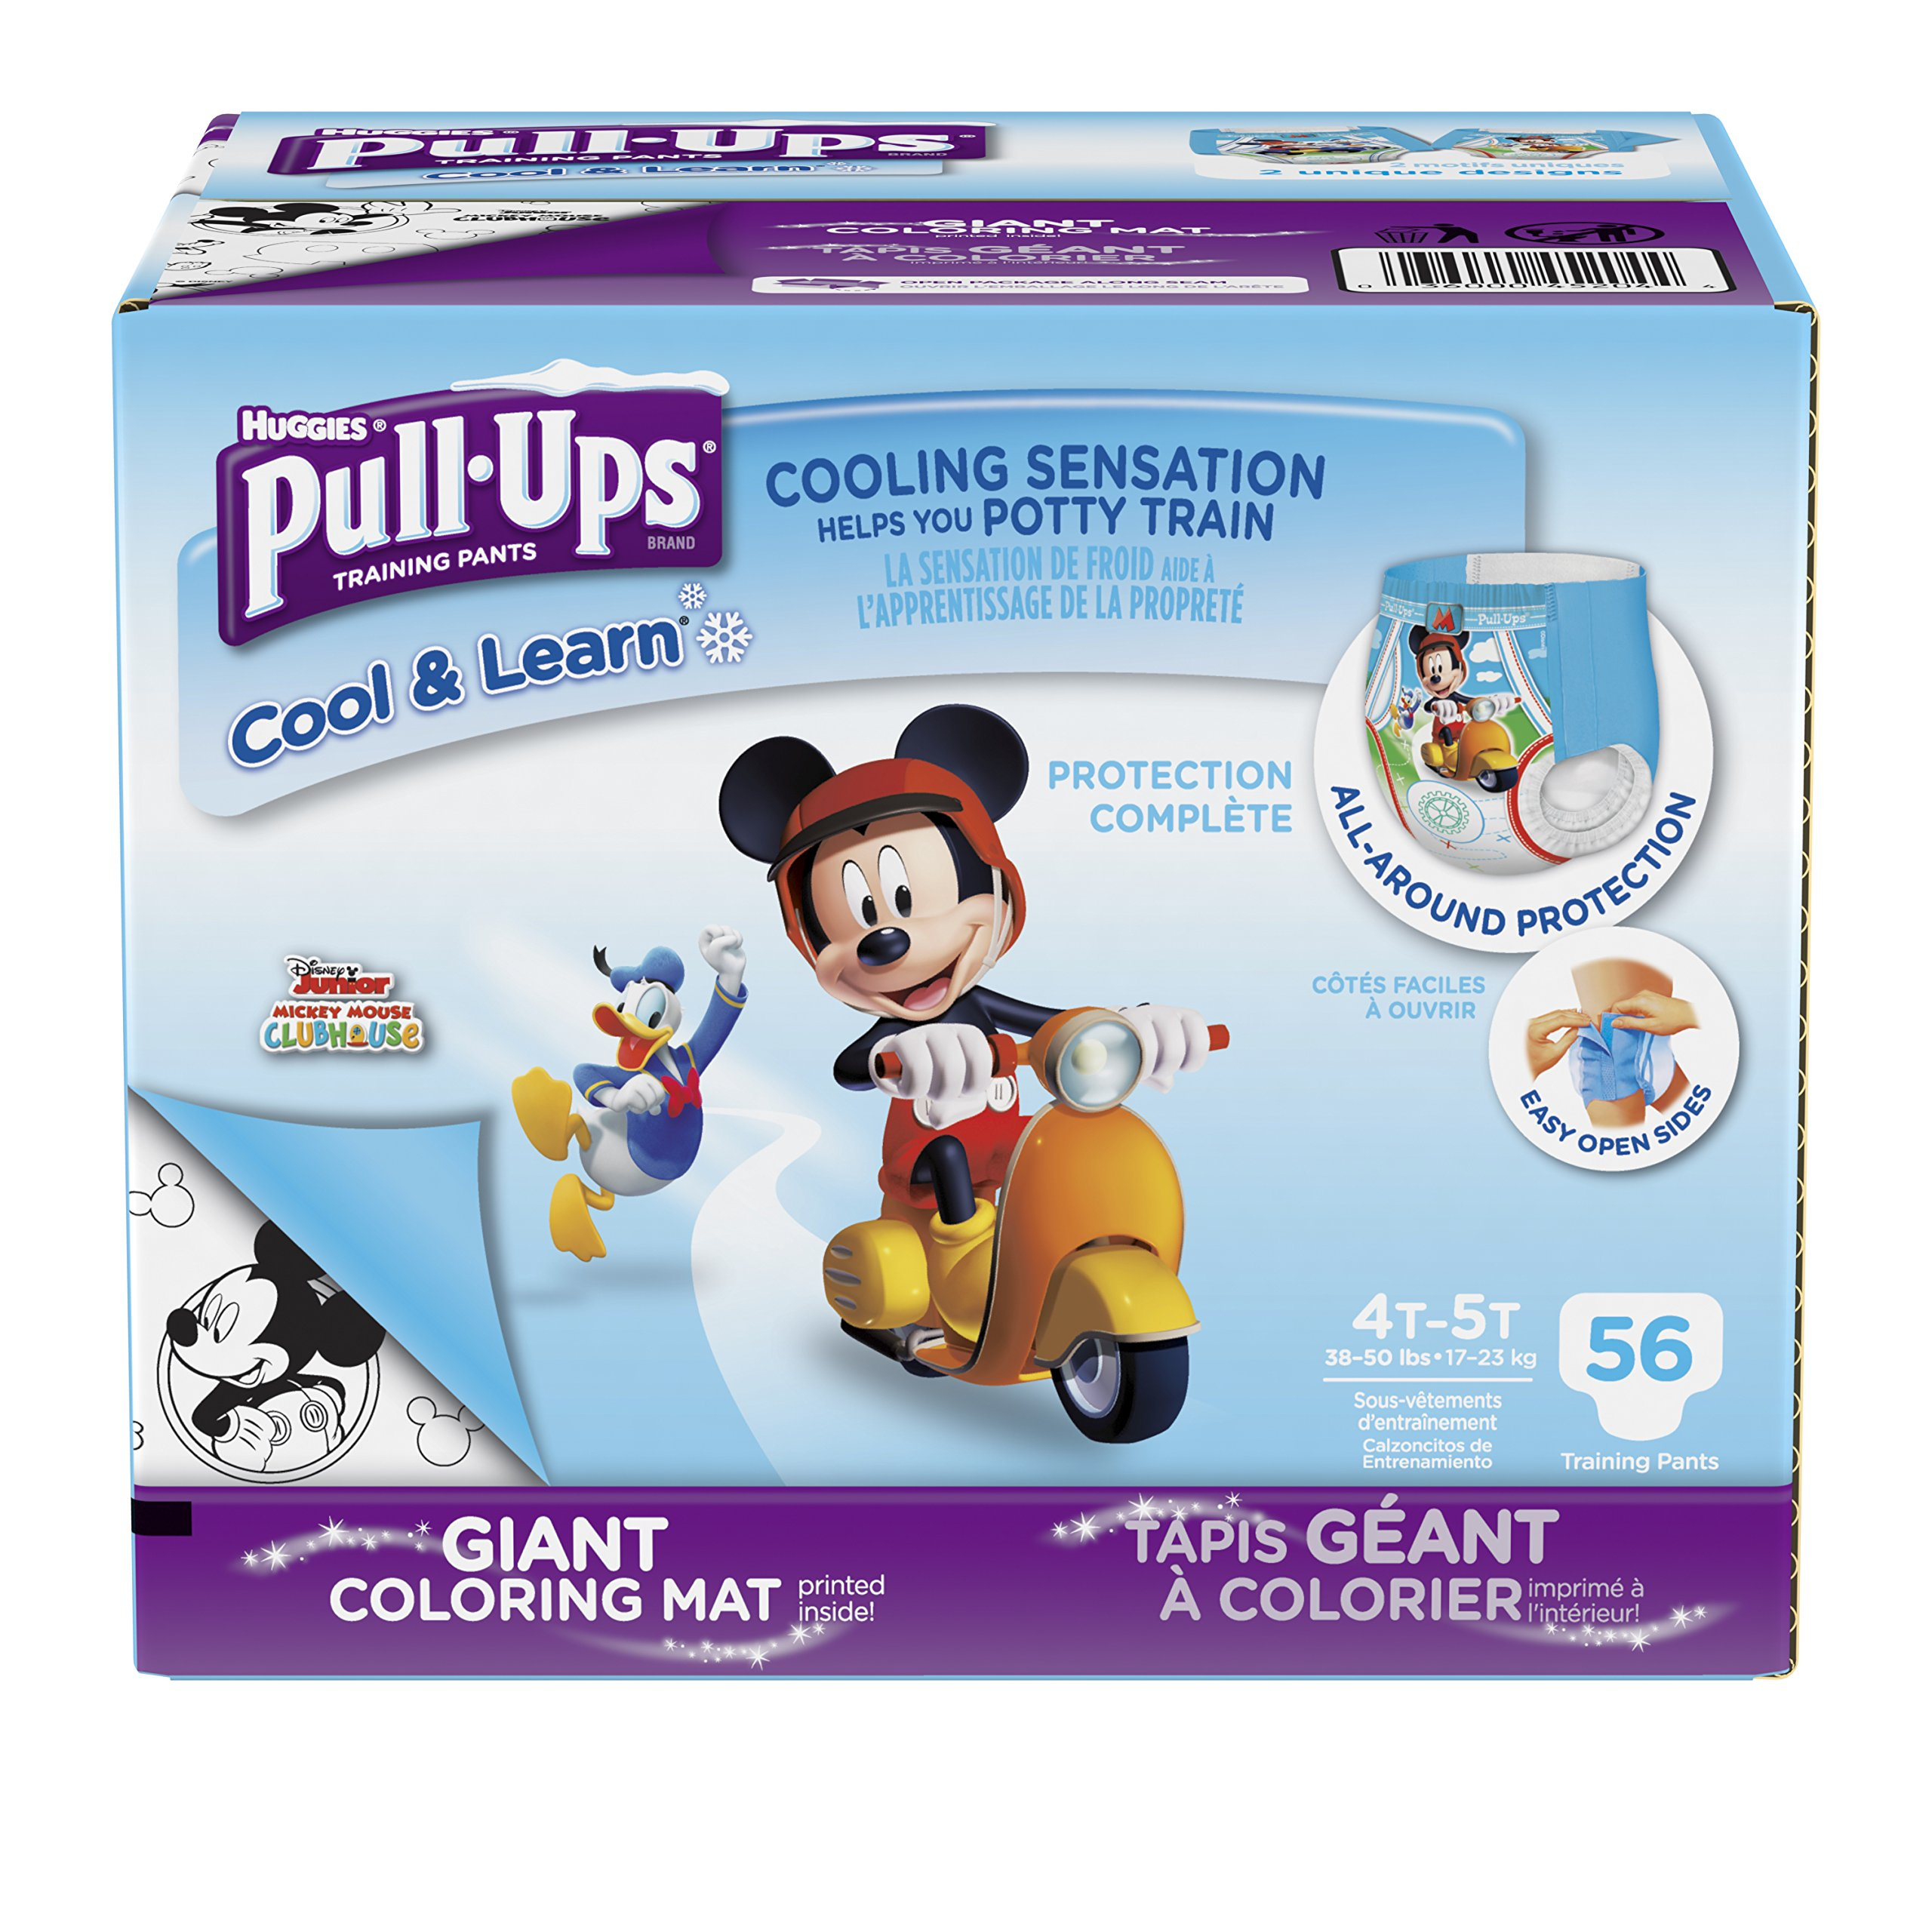 Get Quotations · Pull-Ups Cool & Learn Training Pants for Boys, 4T-5T (38